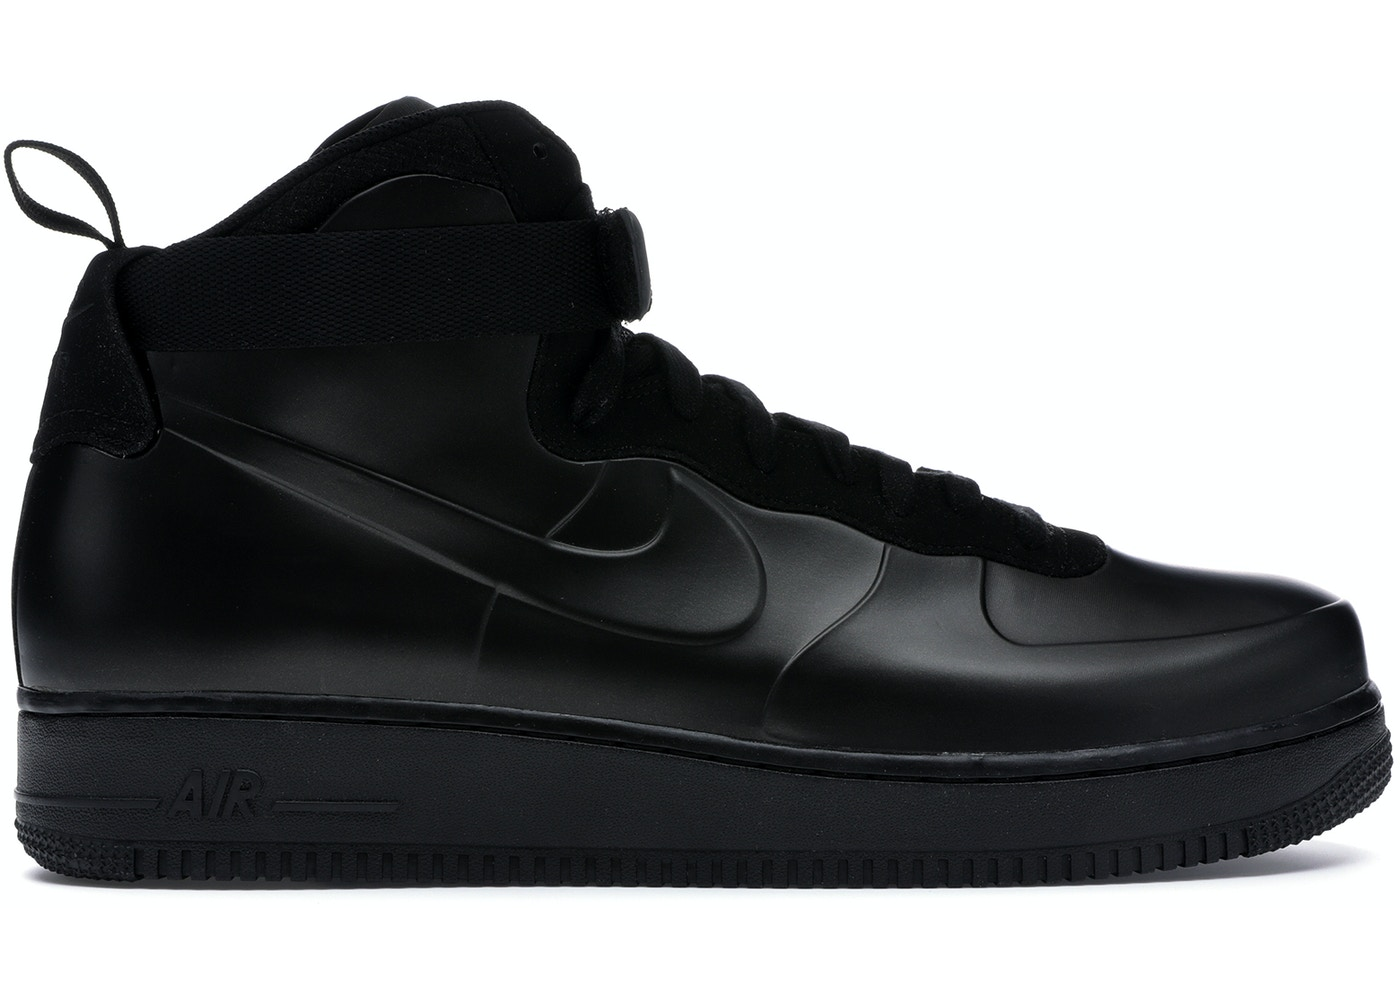 e3cbc8f5e6029 Buy Nike Air Force 1 Shoes   Deadstock Sneakers